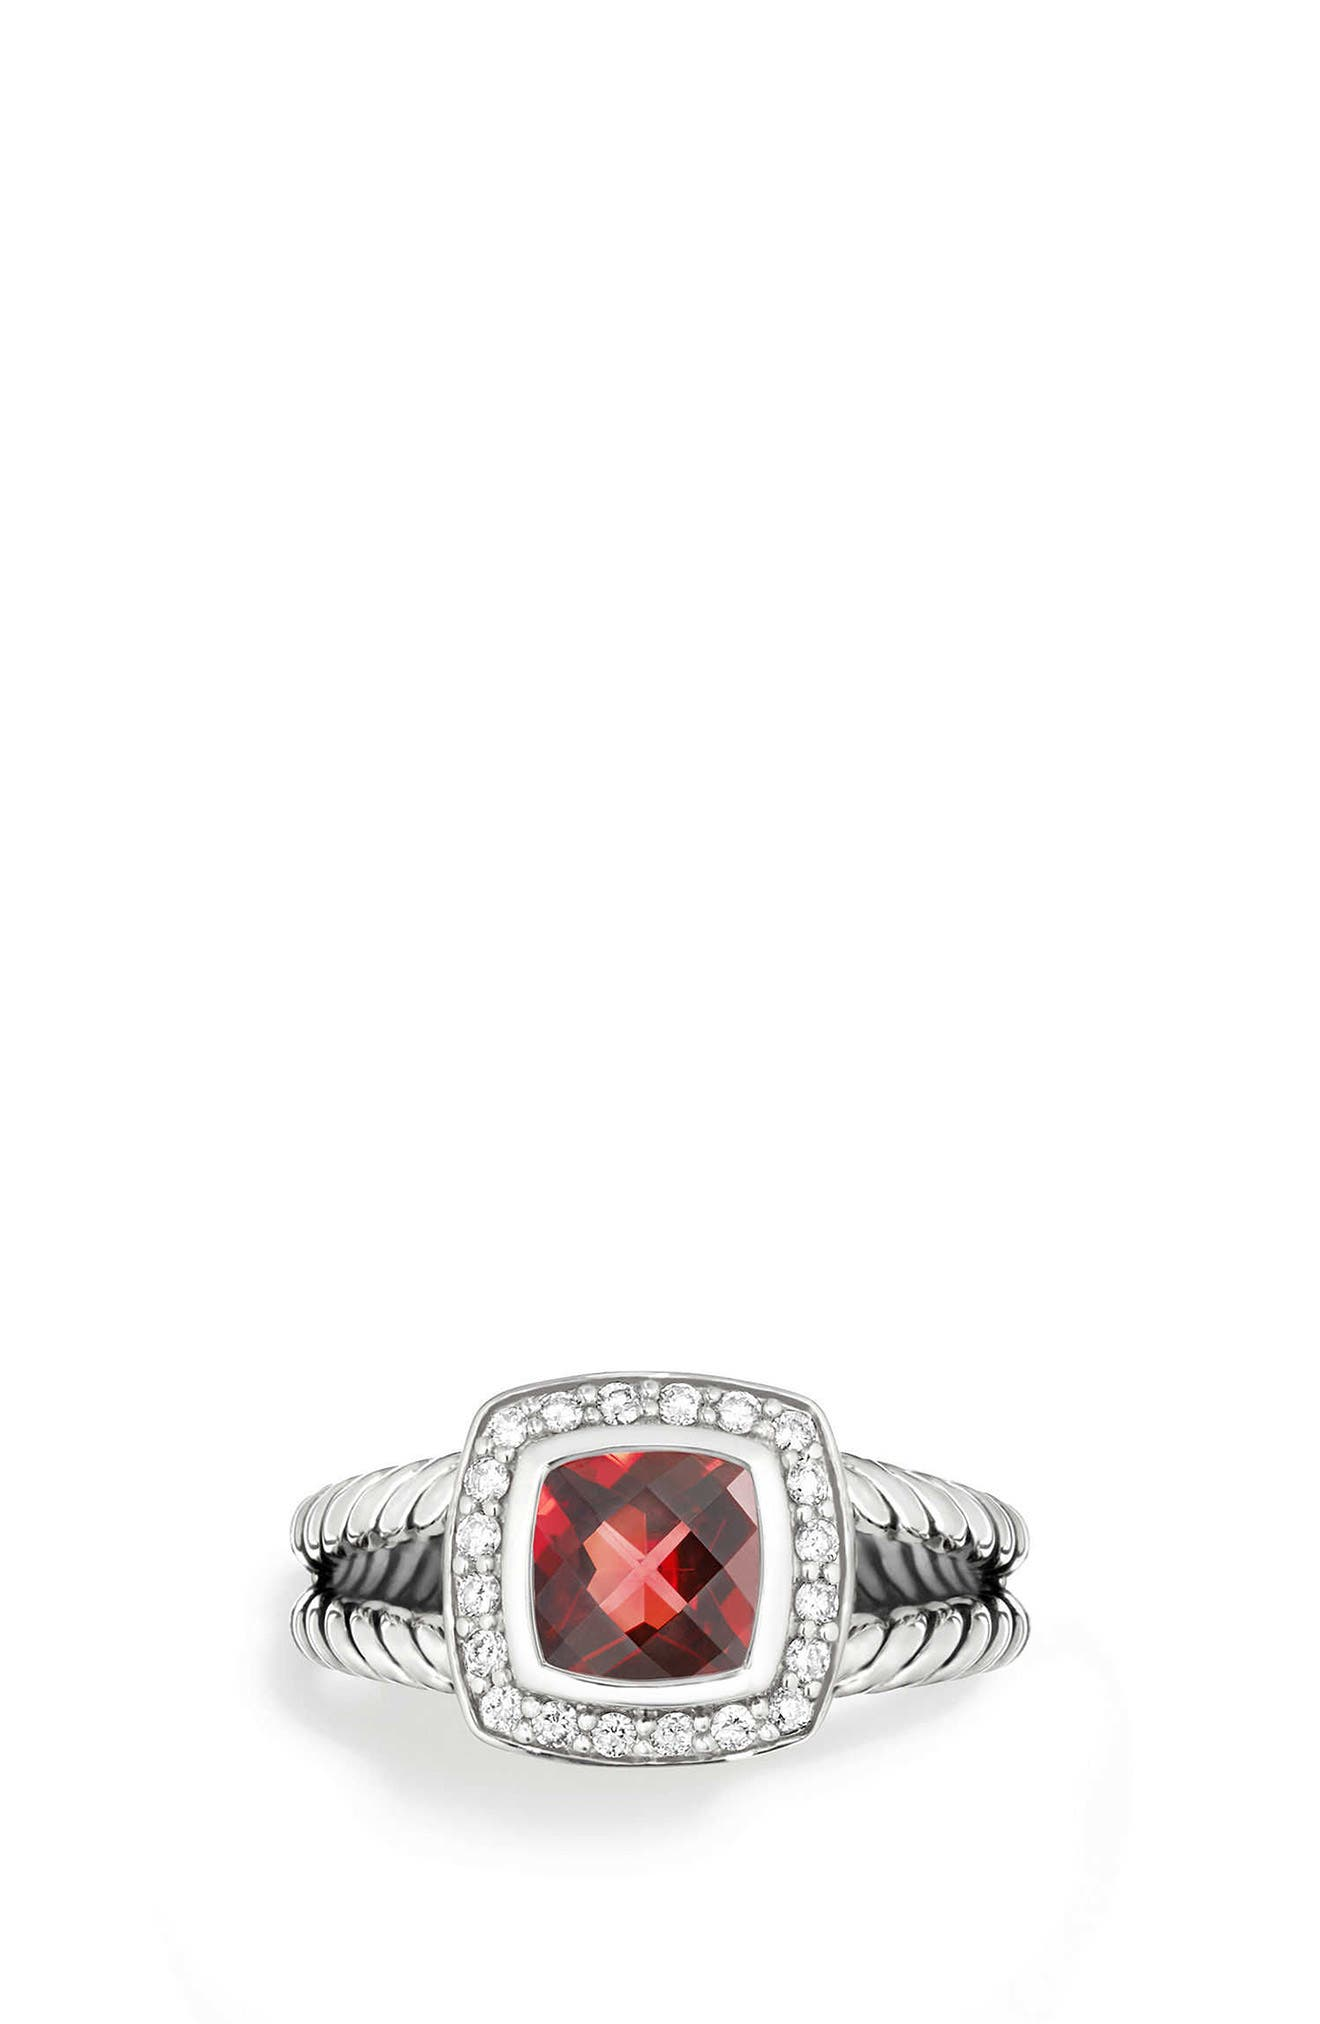 Petite Albion<sup>®</sup> Ring with Diamonds,                             Main thumbnail 1, color,                             SILVER/ DIAMOND/ GARNET